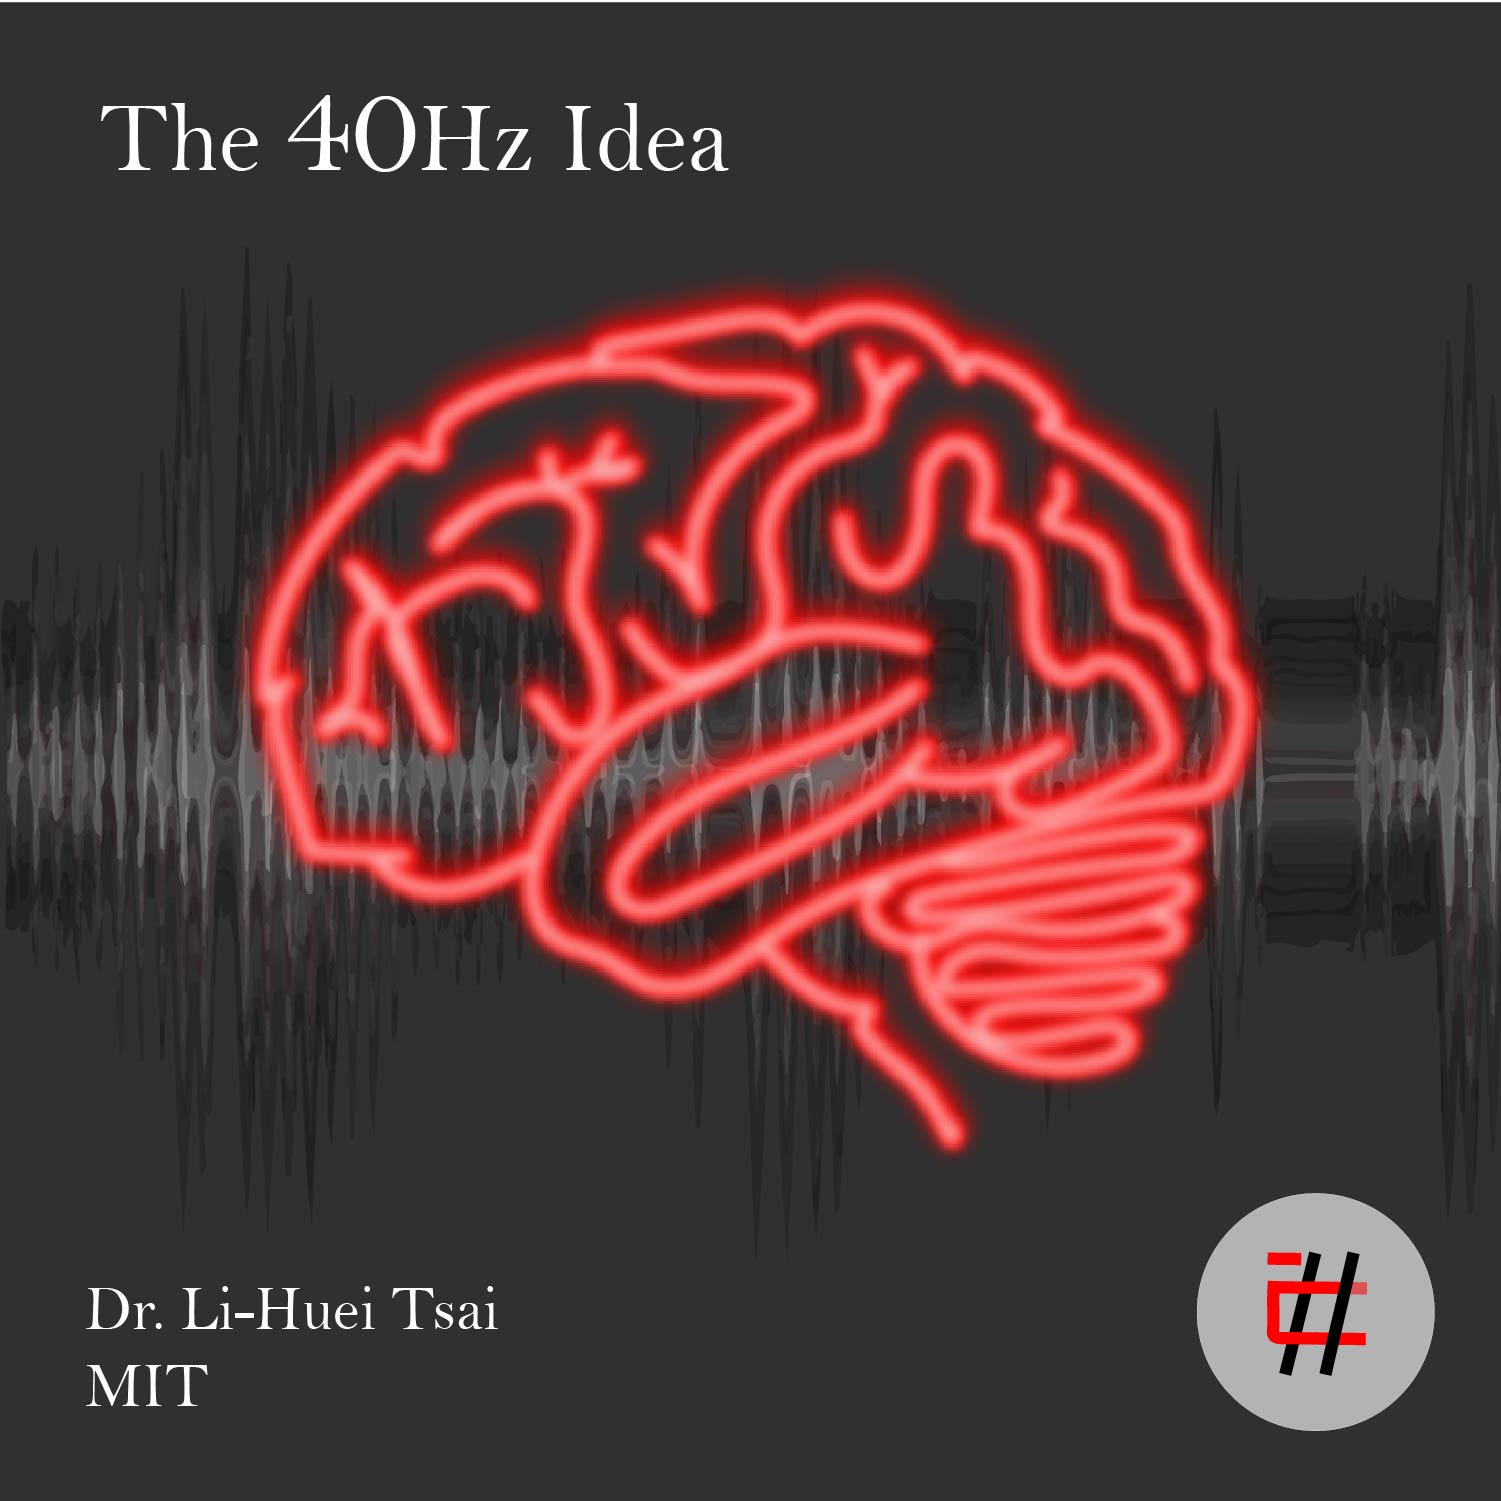 The 40Hz Idea with Dr. Li-Huei Tsai